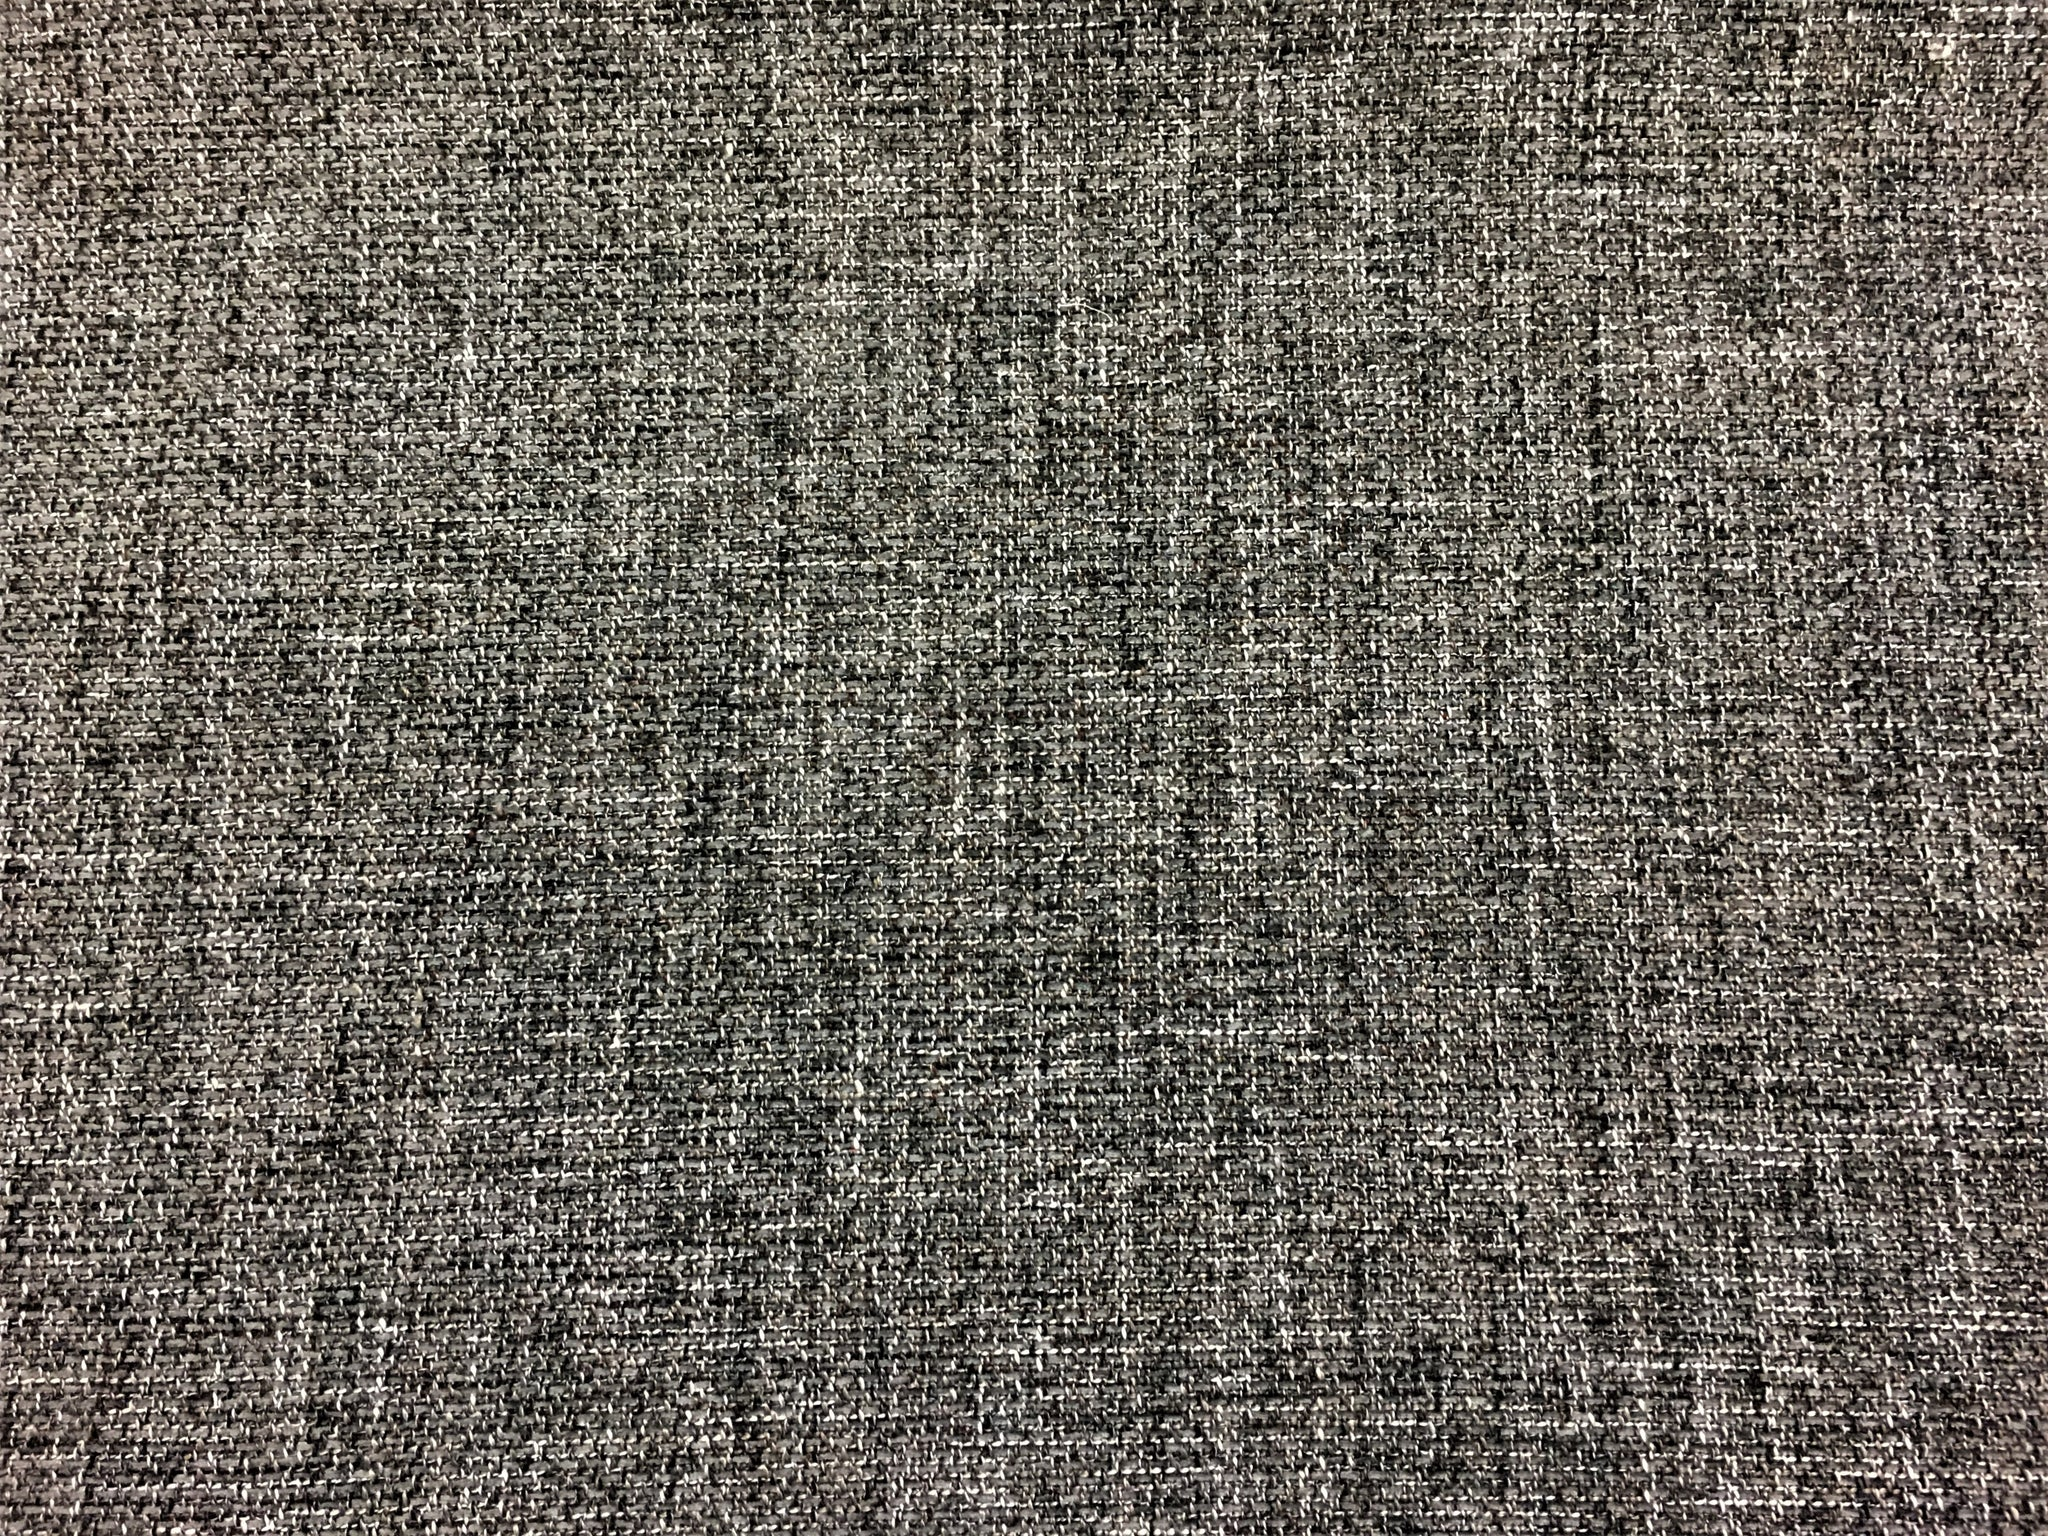 Tweed Modern Charcoal Gray Upholstery Fabric Fabric Bistro Columbia South Carolina,How To Make A Candle Wick Stay